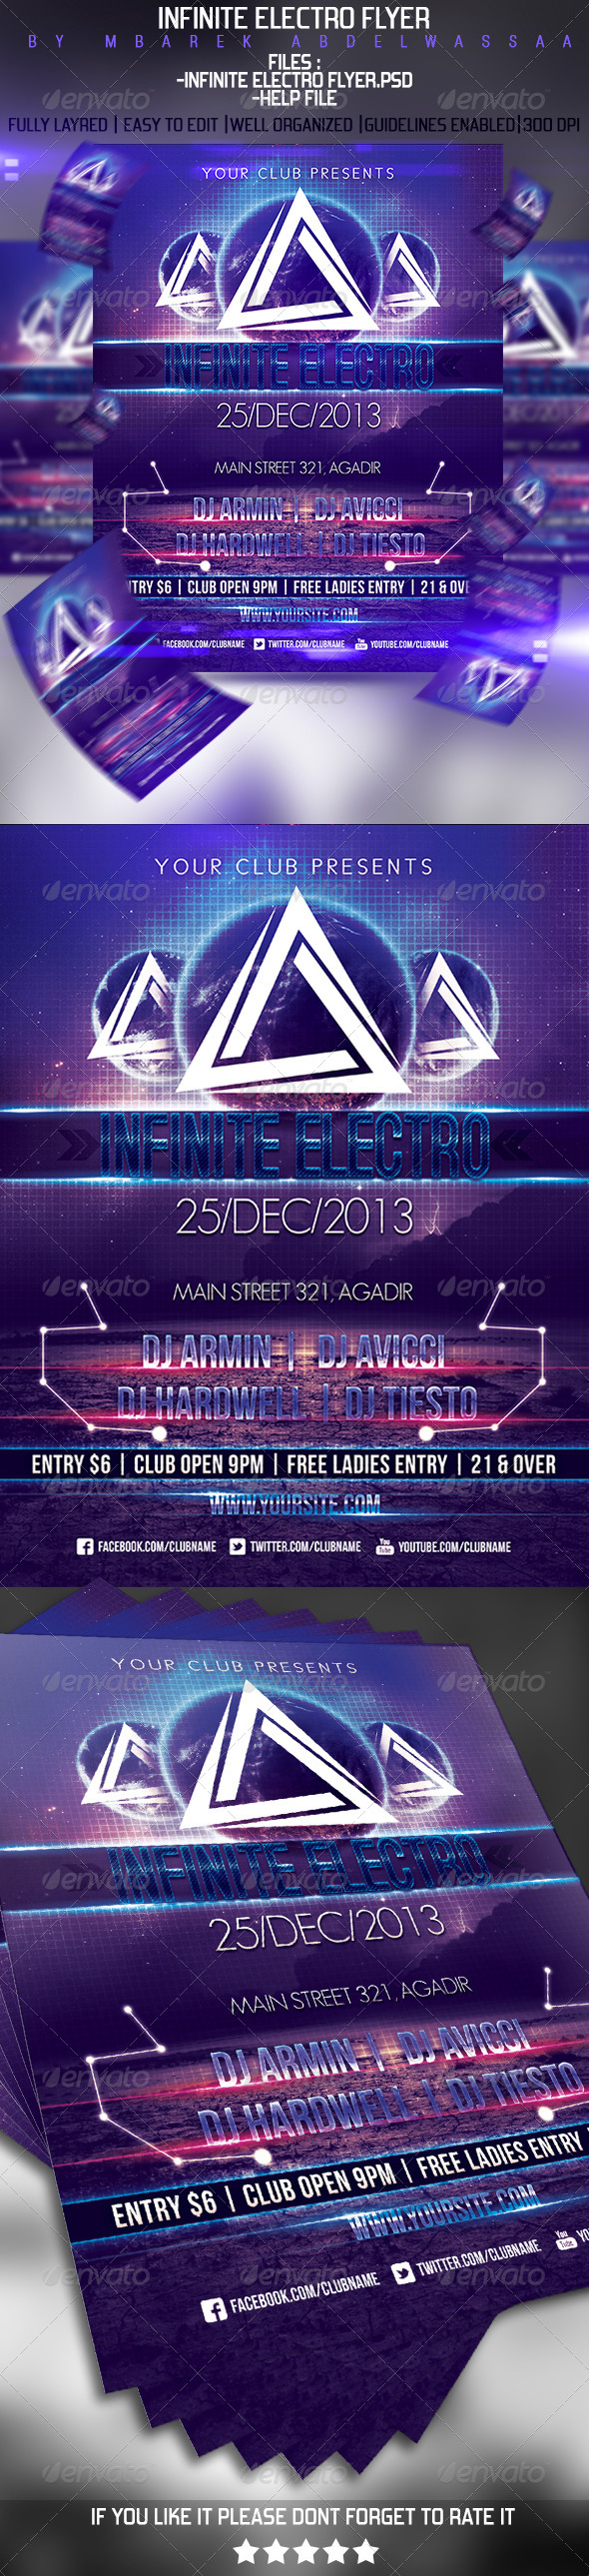 Infinite Electro Flyer - Events Flyers